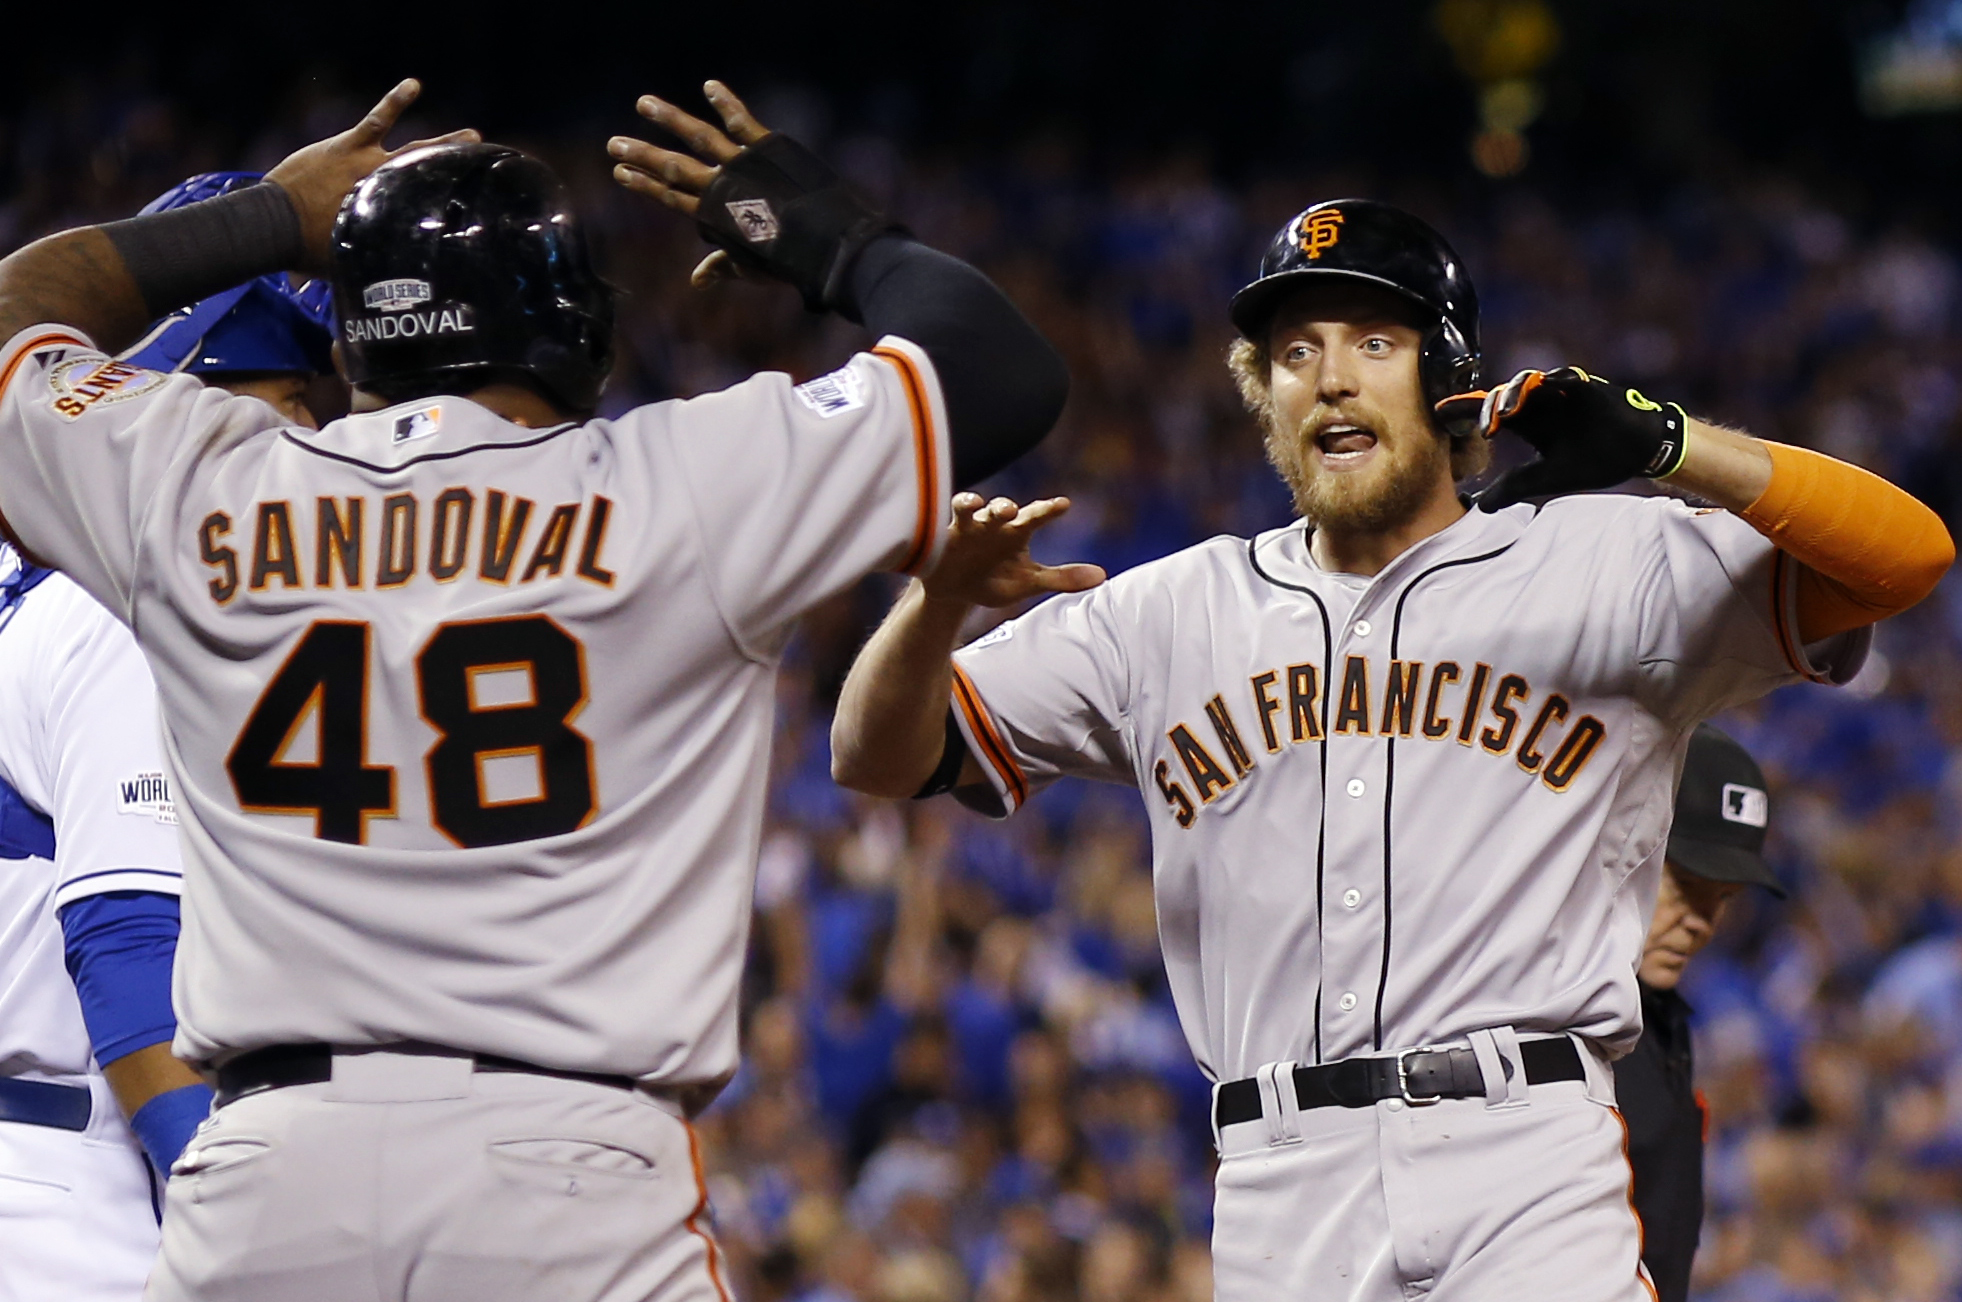 Pablo Sandoval and Hunter Pence led the Giants' offense in a 7-1 Game 1 win. (AP)